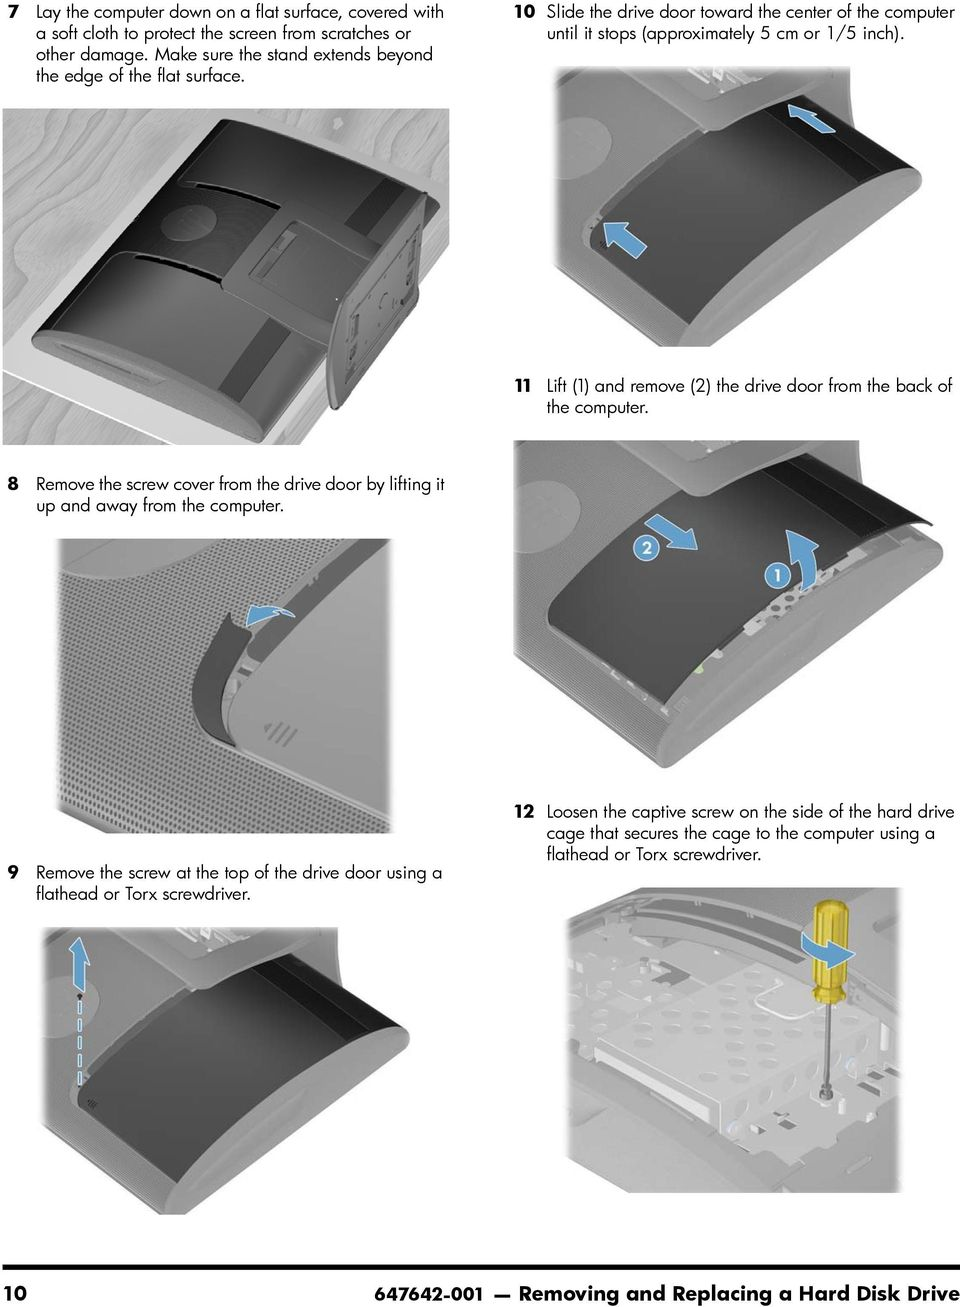 11 Lift (1) and remove (2) the drive door from the back of the 8 Remove the screw cover from the drive door by lifting it up and away from the 9 Remove the screw at the top of the